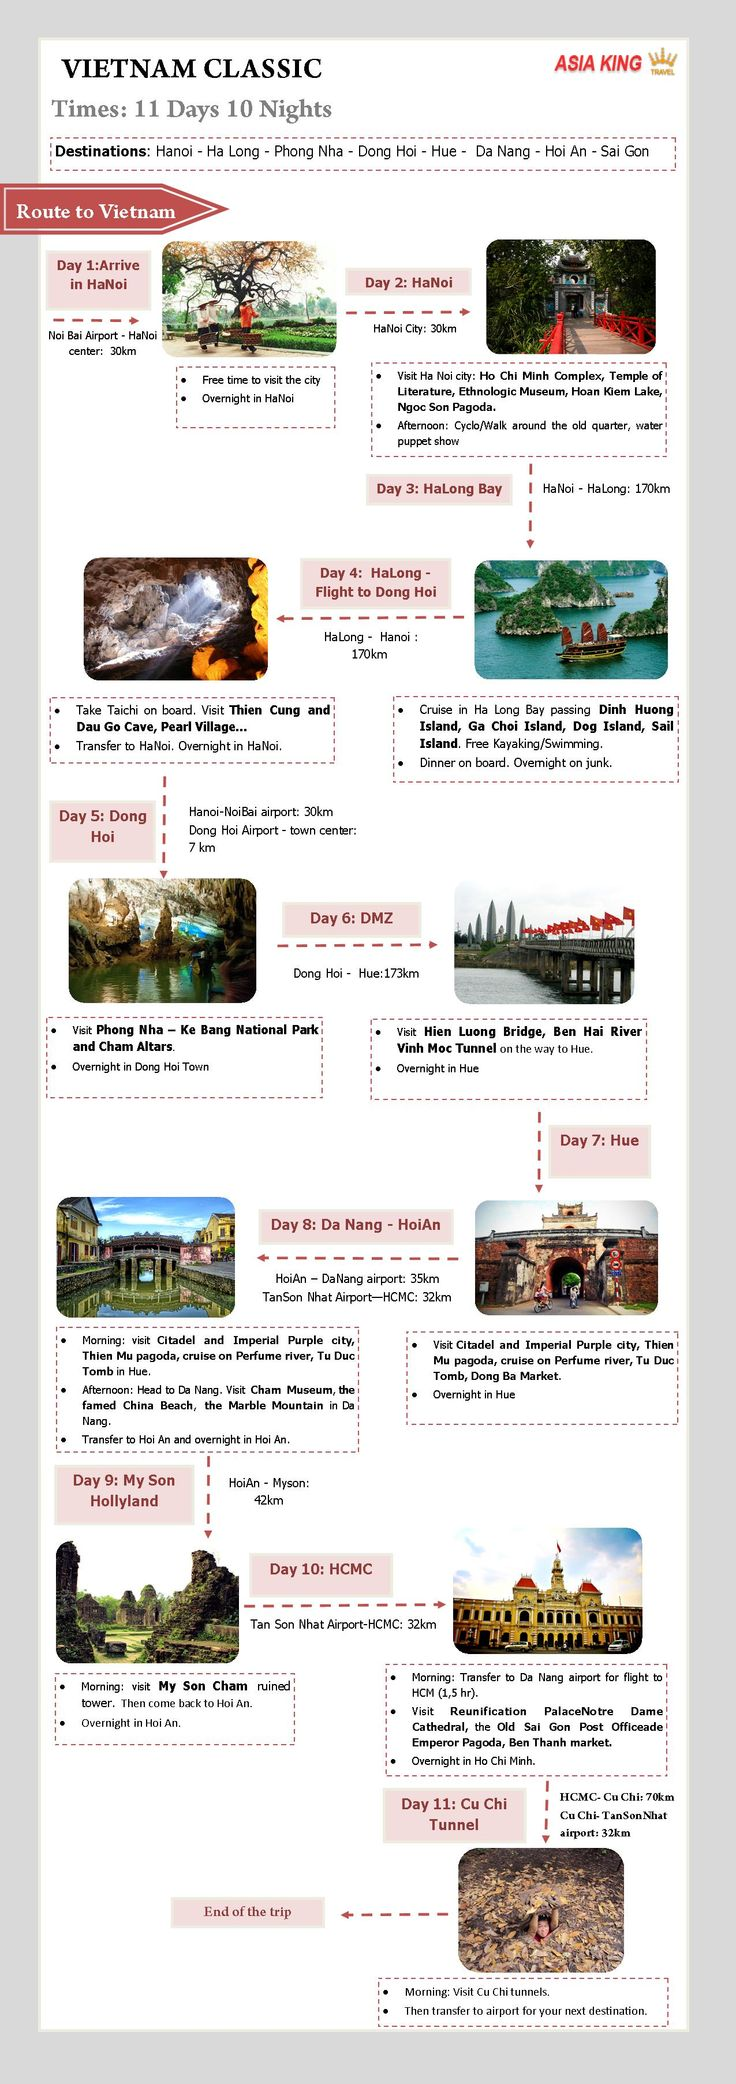 (Classic) VietNam. Length: 10 Days, 9 Nights Destination: Hanoi, HaLong, Dong Hoi, Hue, Hoi An, Da Nang, Ho Chi Minh, Cu Chi Tunnel